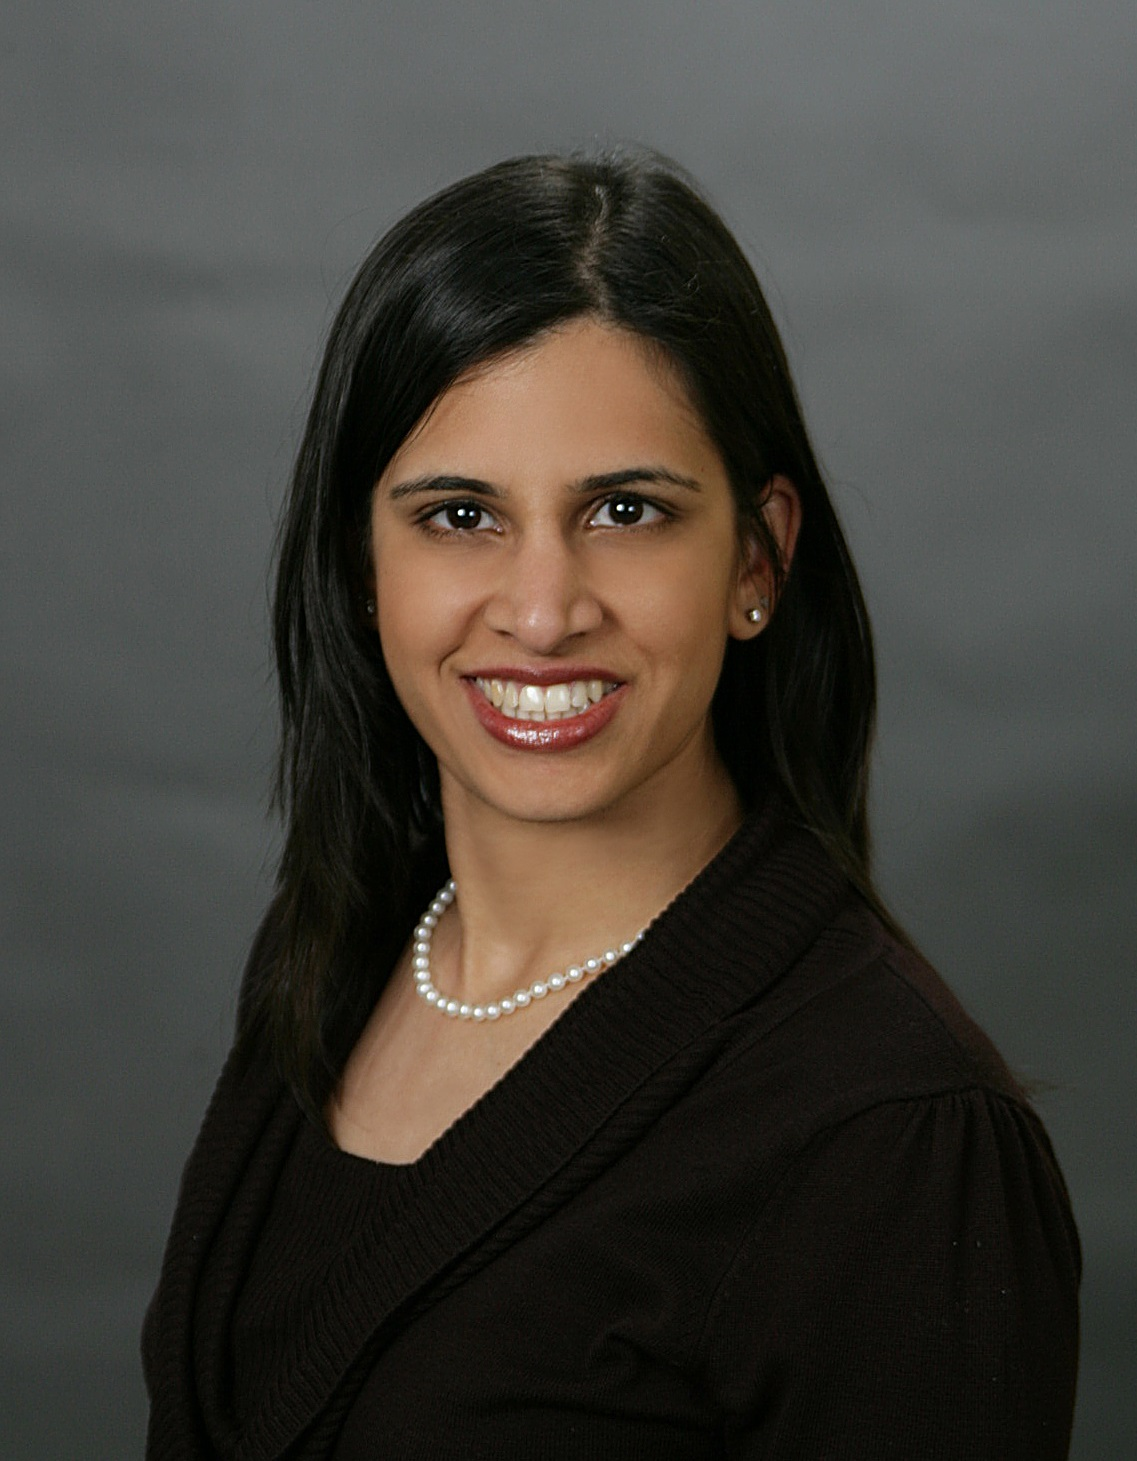 Dr. Jessica Shah, MD